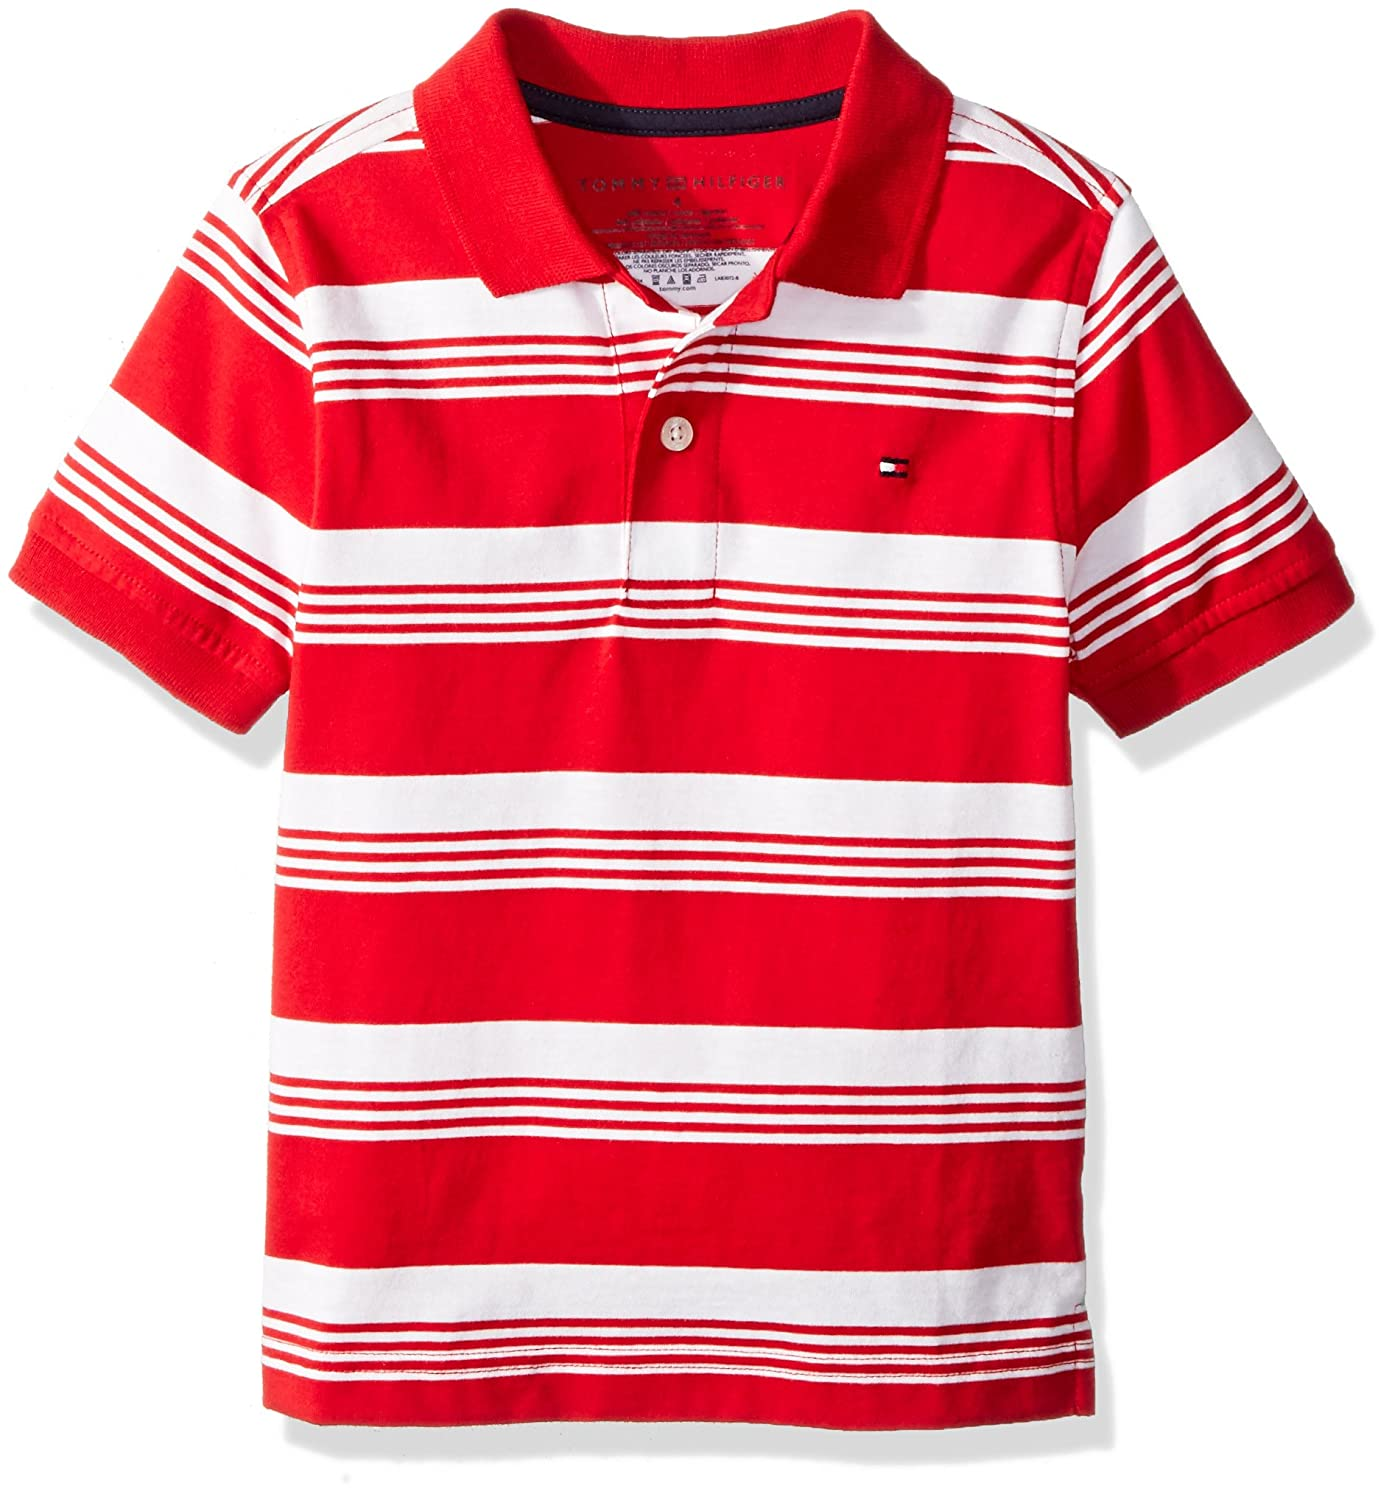 988ee3223 Online Cheap wholesale Tommy Hilfiger Boys Short Sleeve Striped Polo Shirt  Polos Suppliers